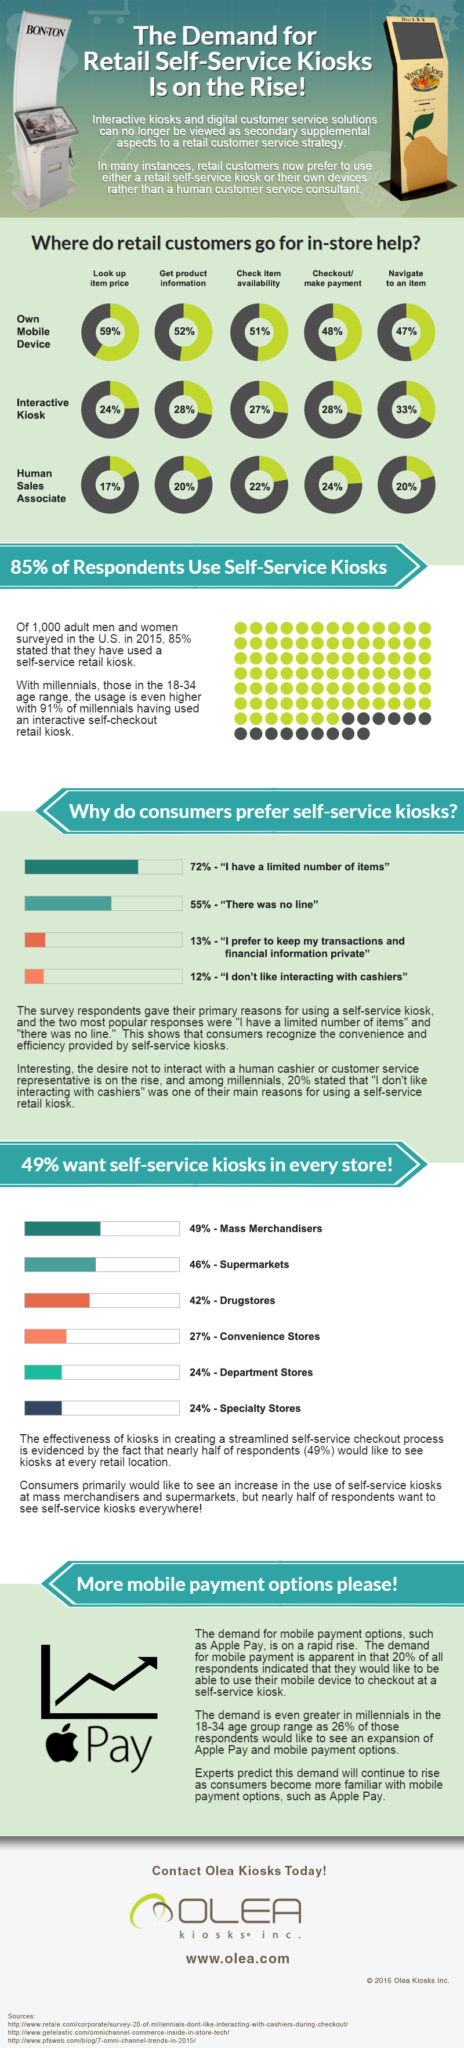 Retail Kiosk Trends 2015 Infographic